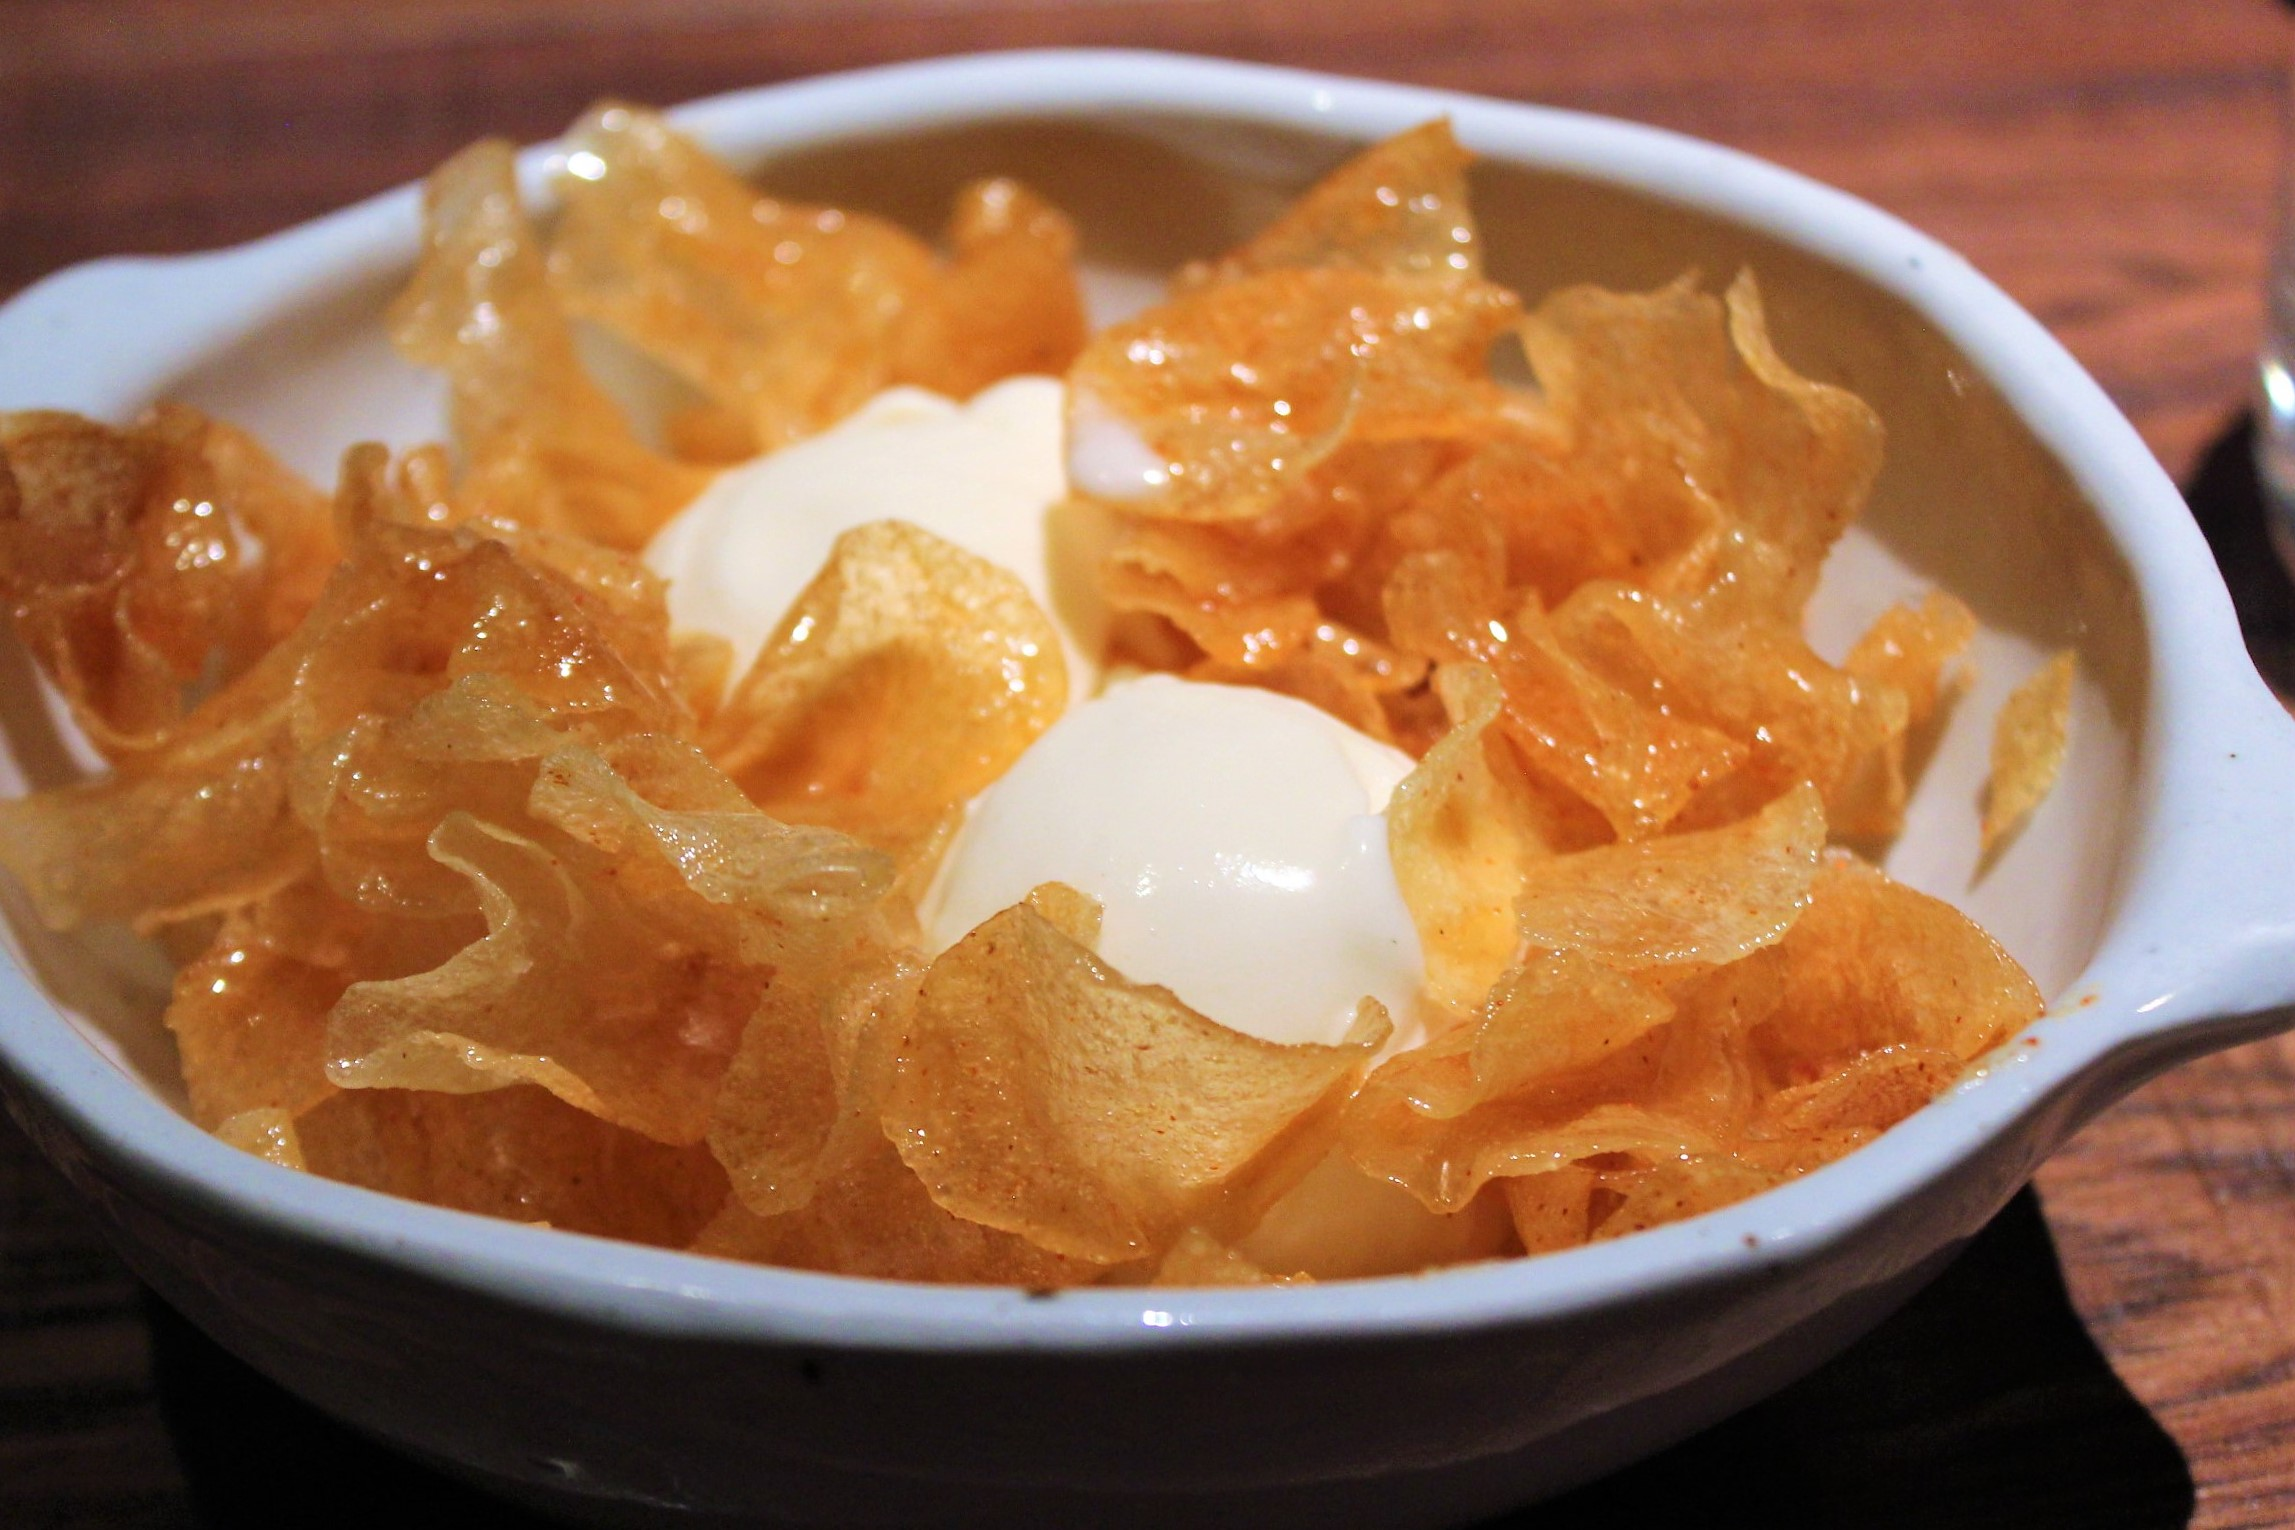 Honey Butter Chips at Oiji in New York City